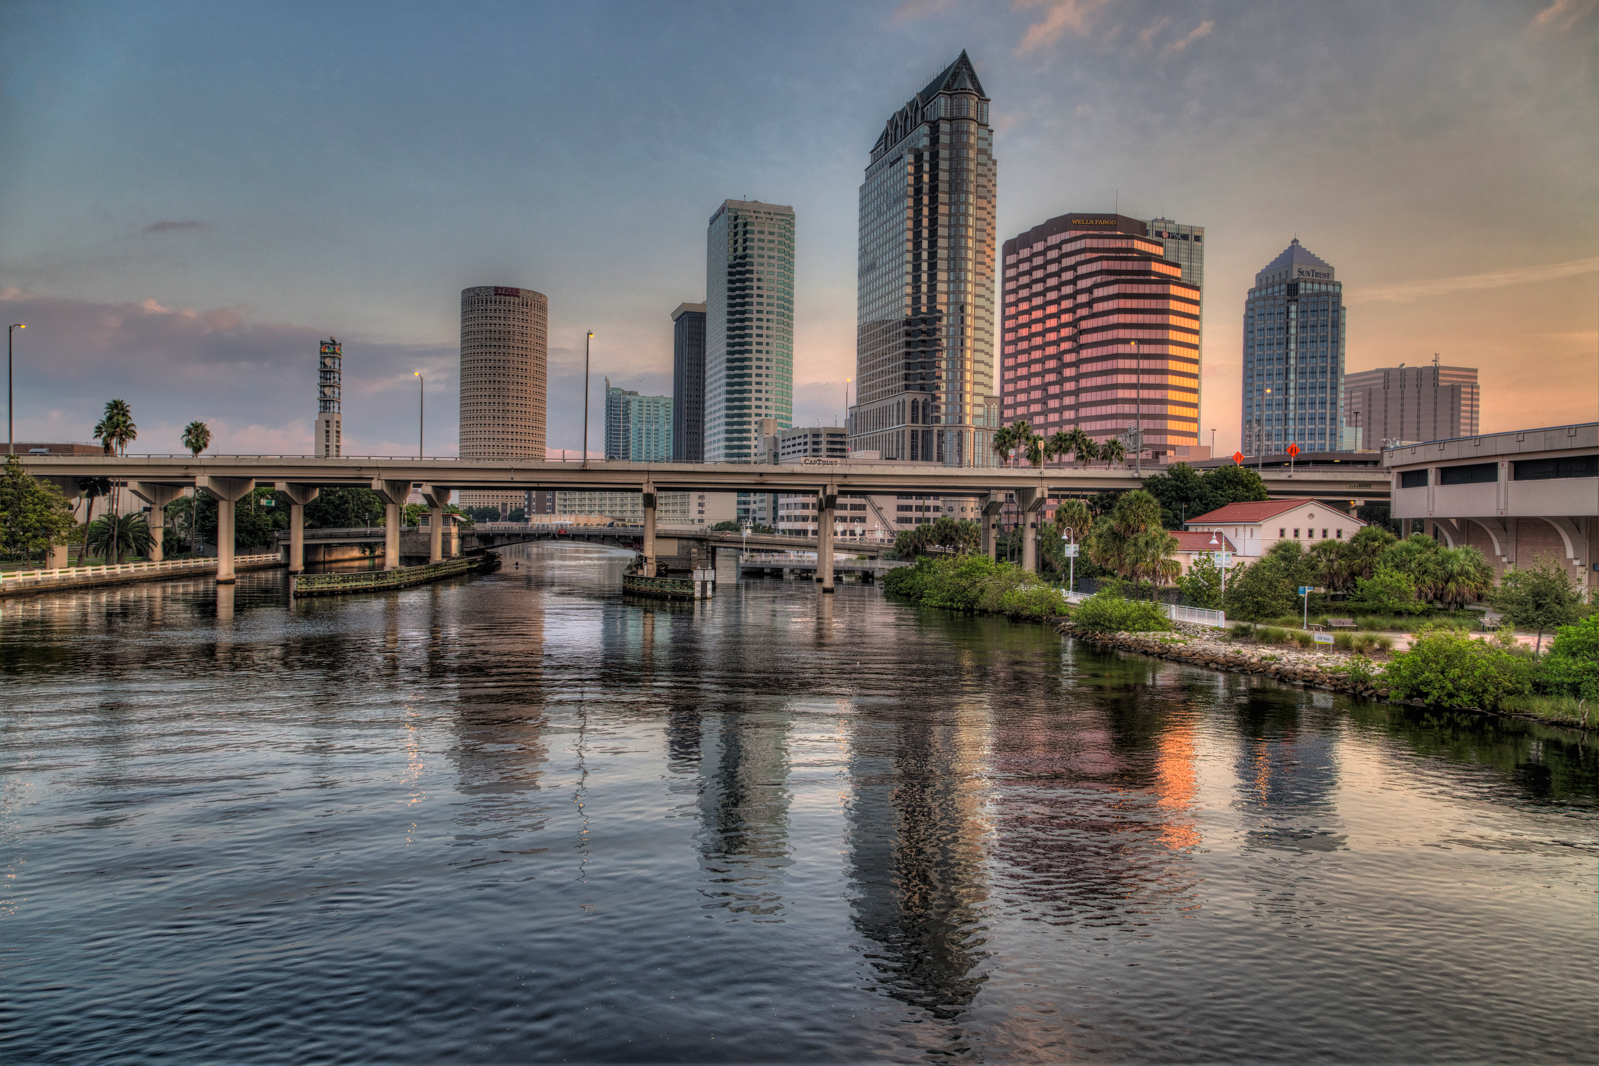 Tampa – Platt Street Bridge Sunrise and Suntrust Statue